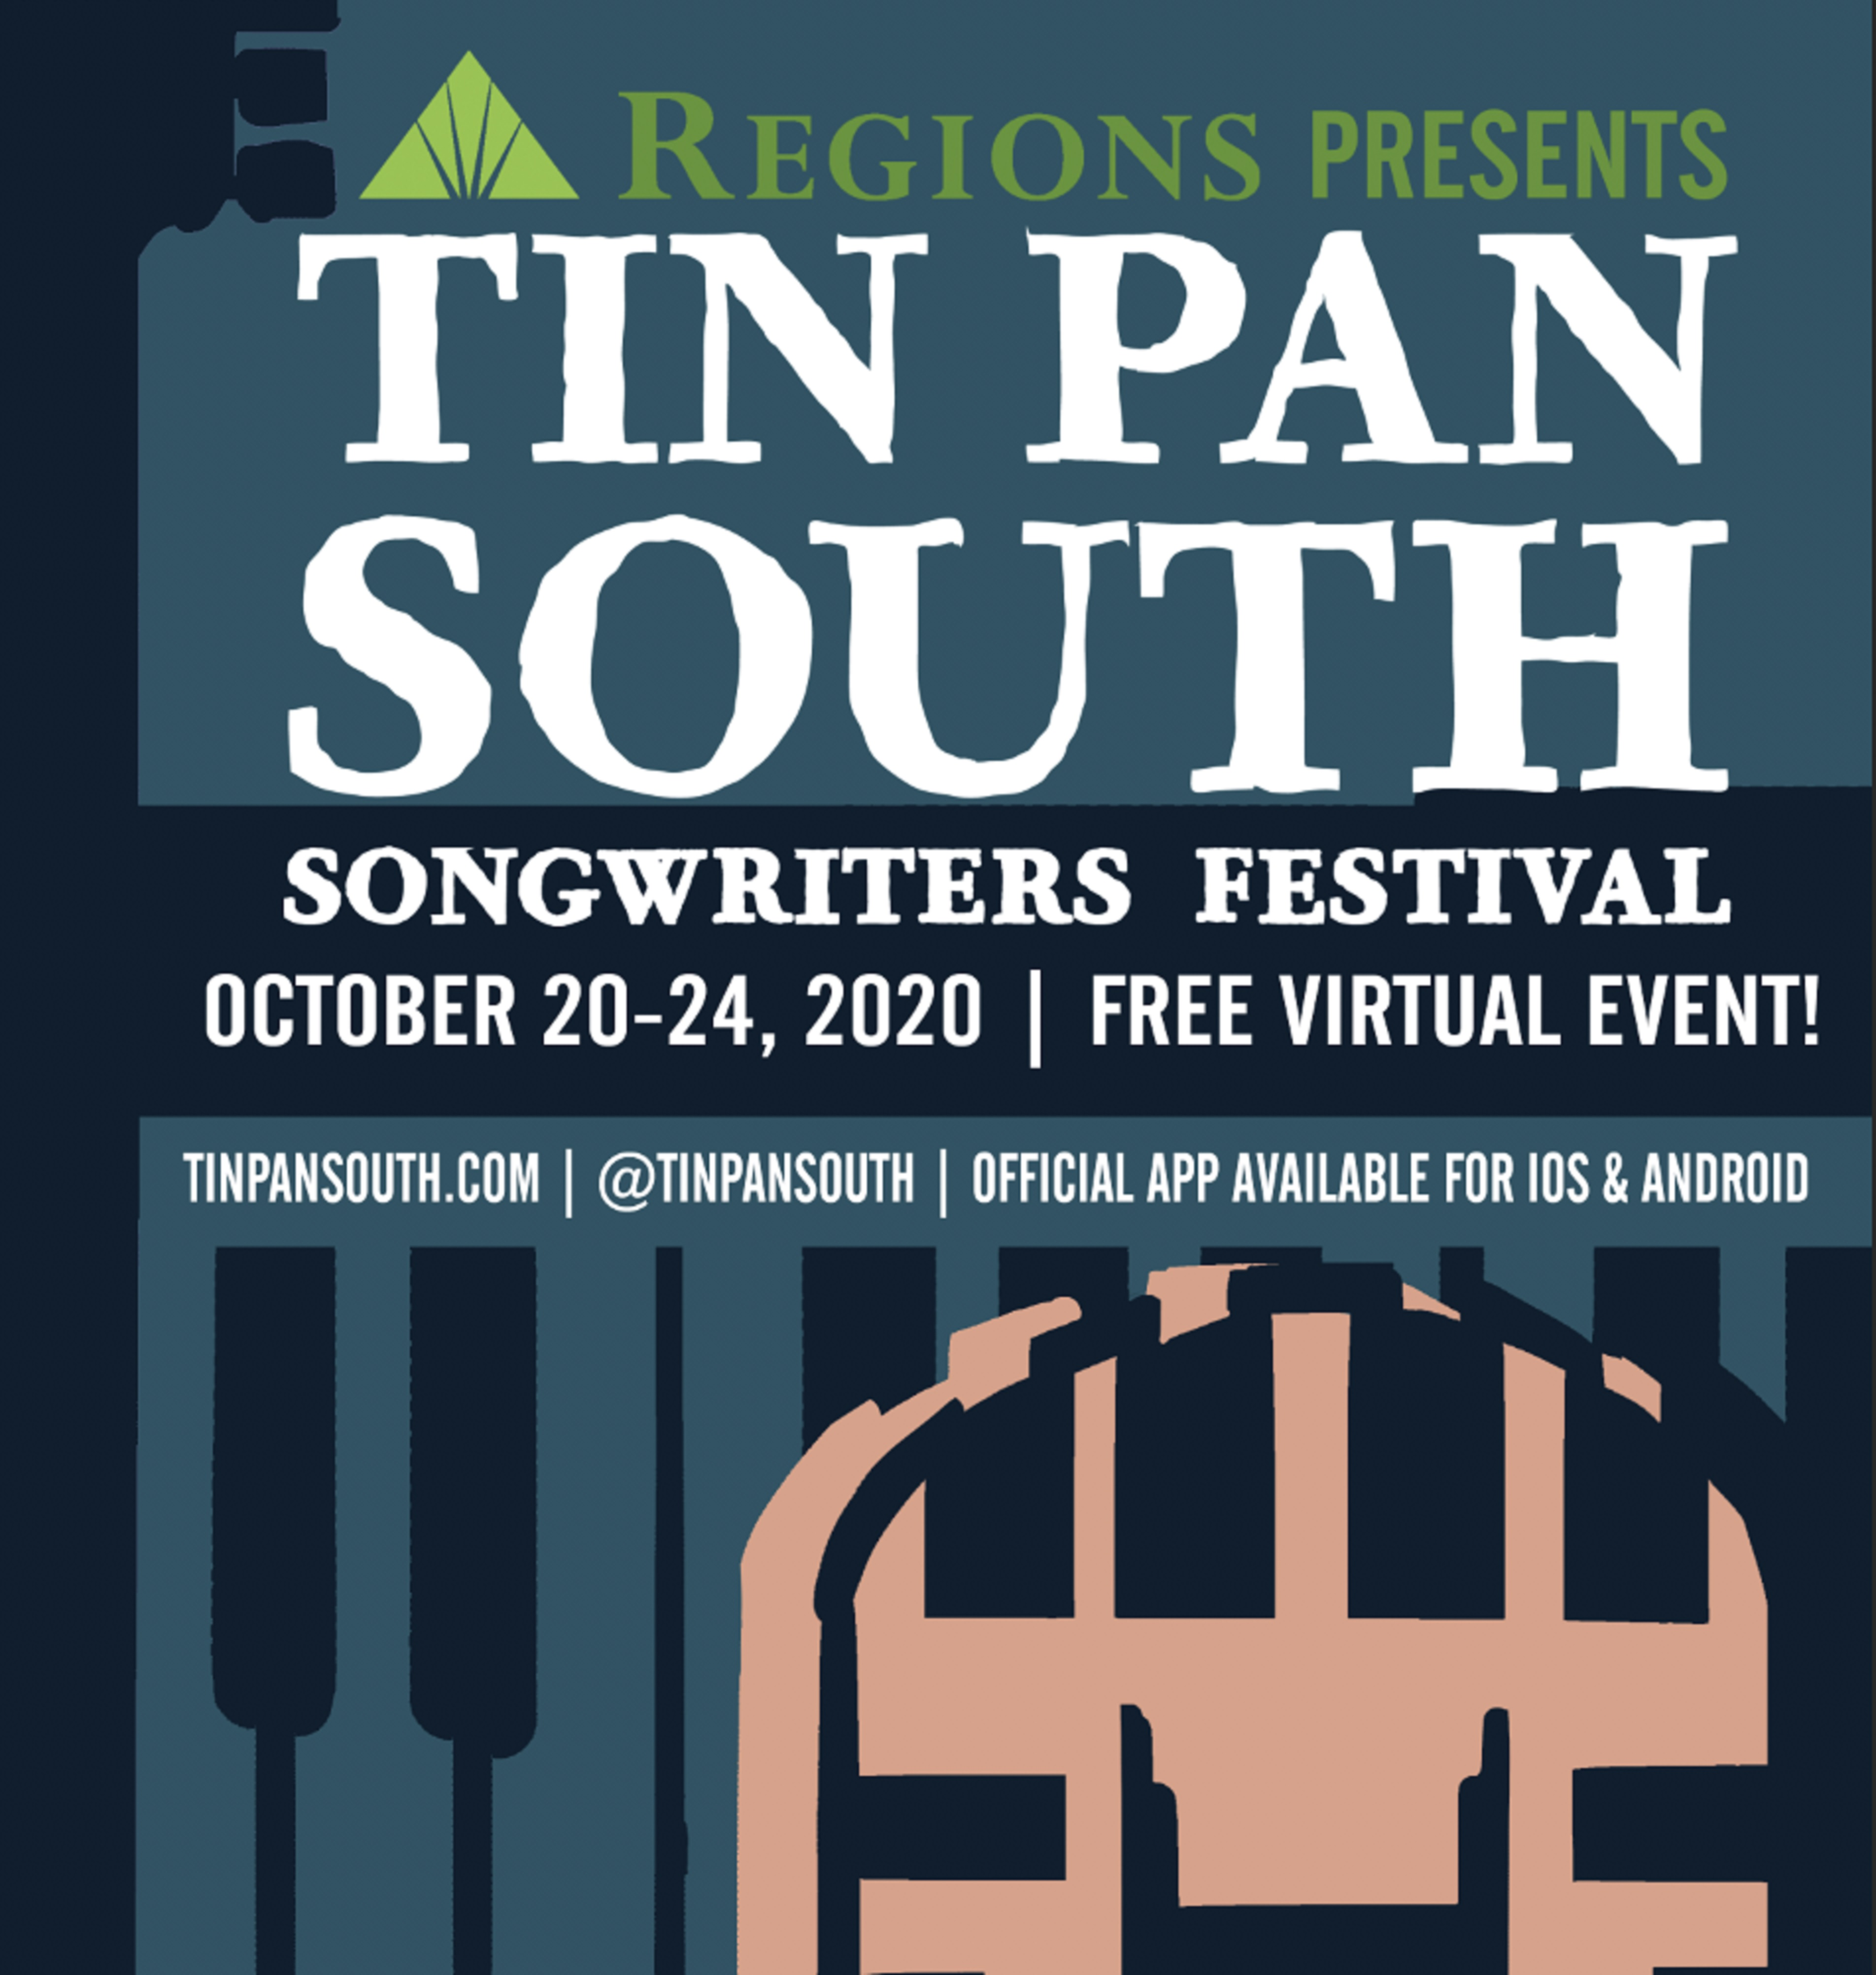 Tin Pan South Songwriters Festival starts today